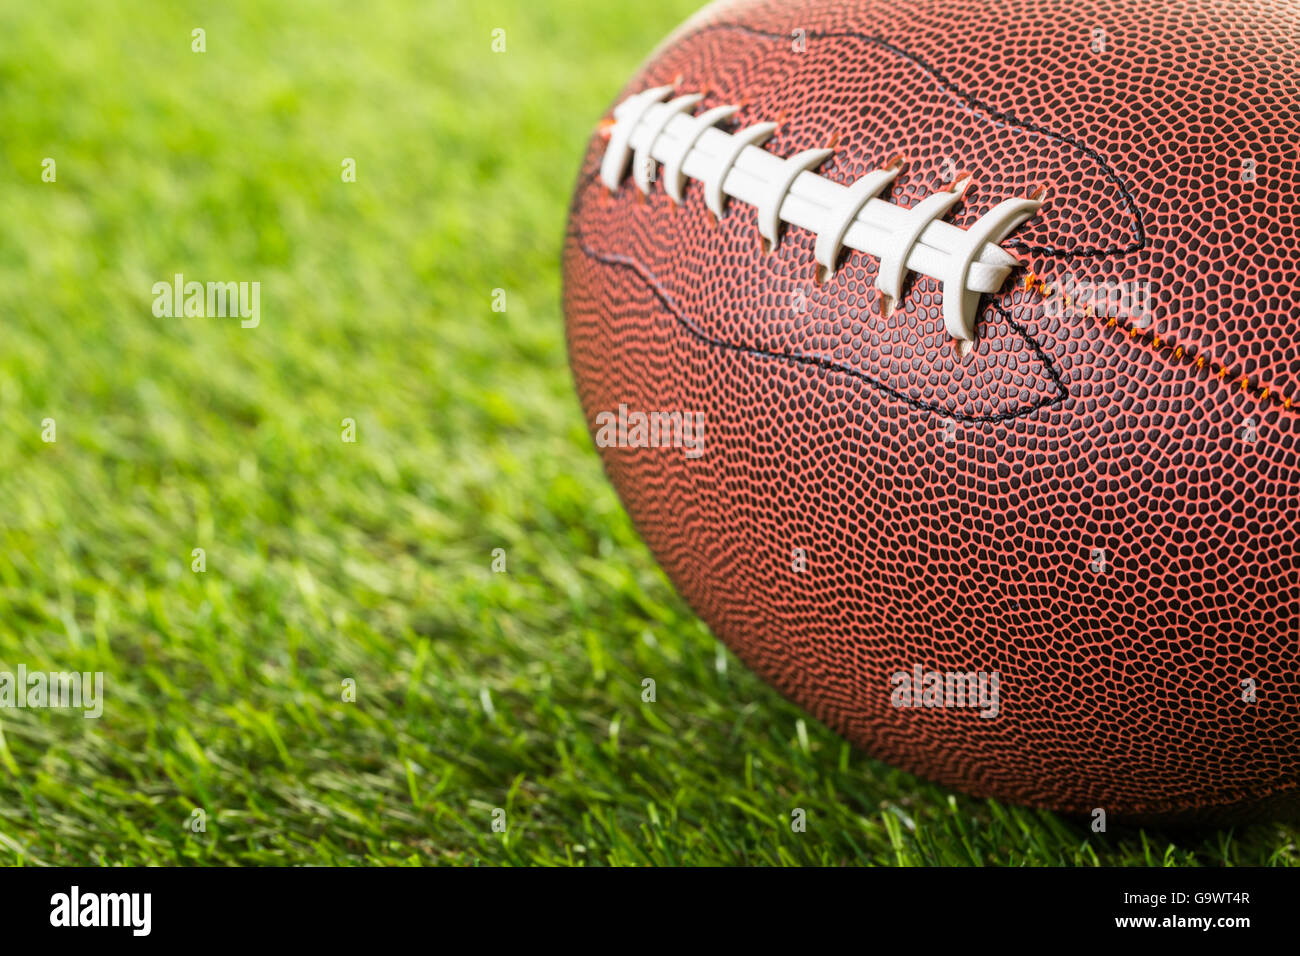 American Football Close up sur sur l'herbe verte. Photo Stock